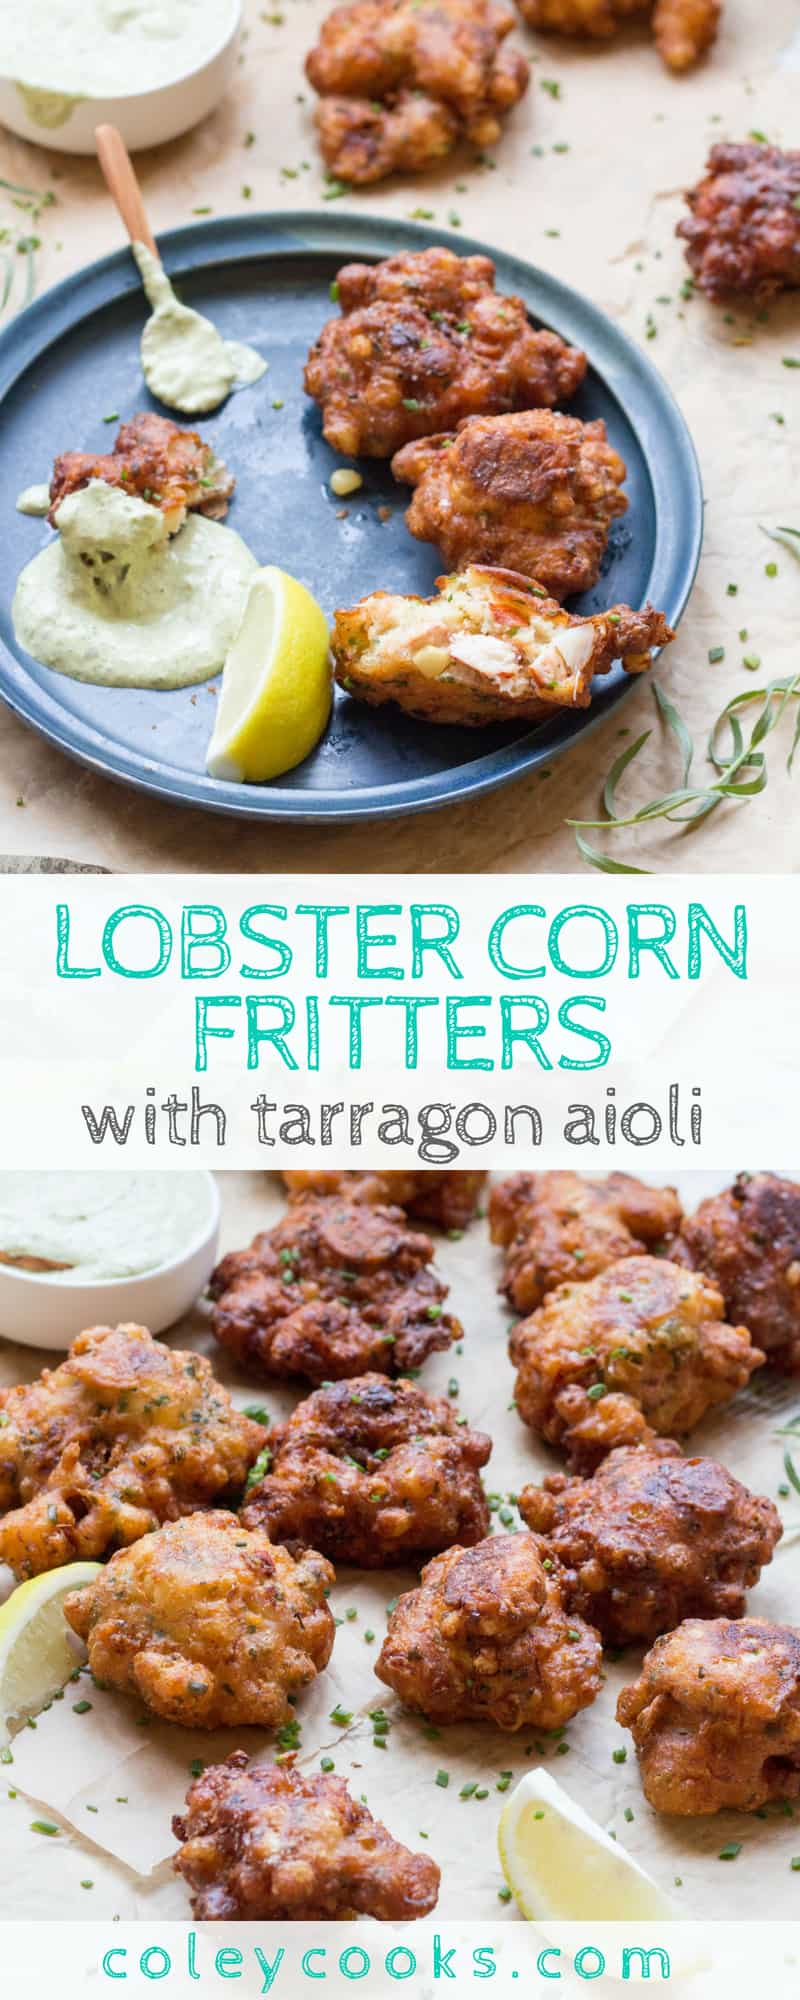 LOBSTER CORN FRITTERS with TARRAGON AIOLI | This easy lobster recipe is the best summer appetizer ever! Lightly fried with big chunks of lobster and fresh sweet corn. #recipe #appetizer #lobster #corn #summer | ColeyCooks.com